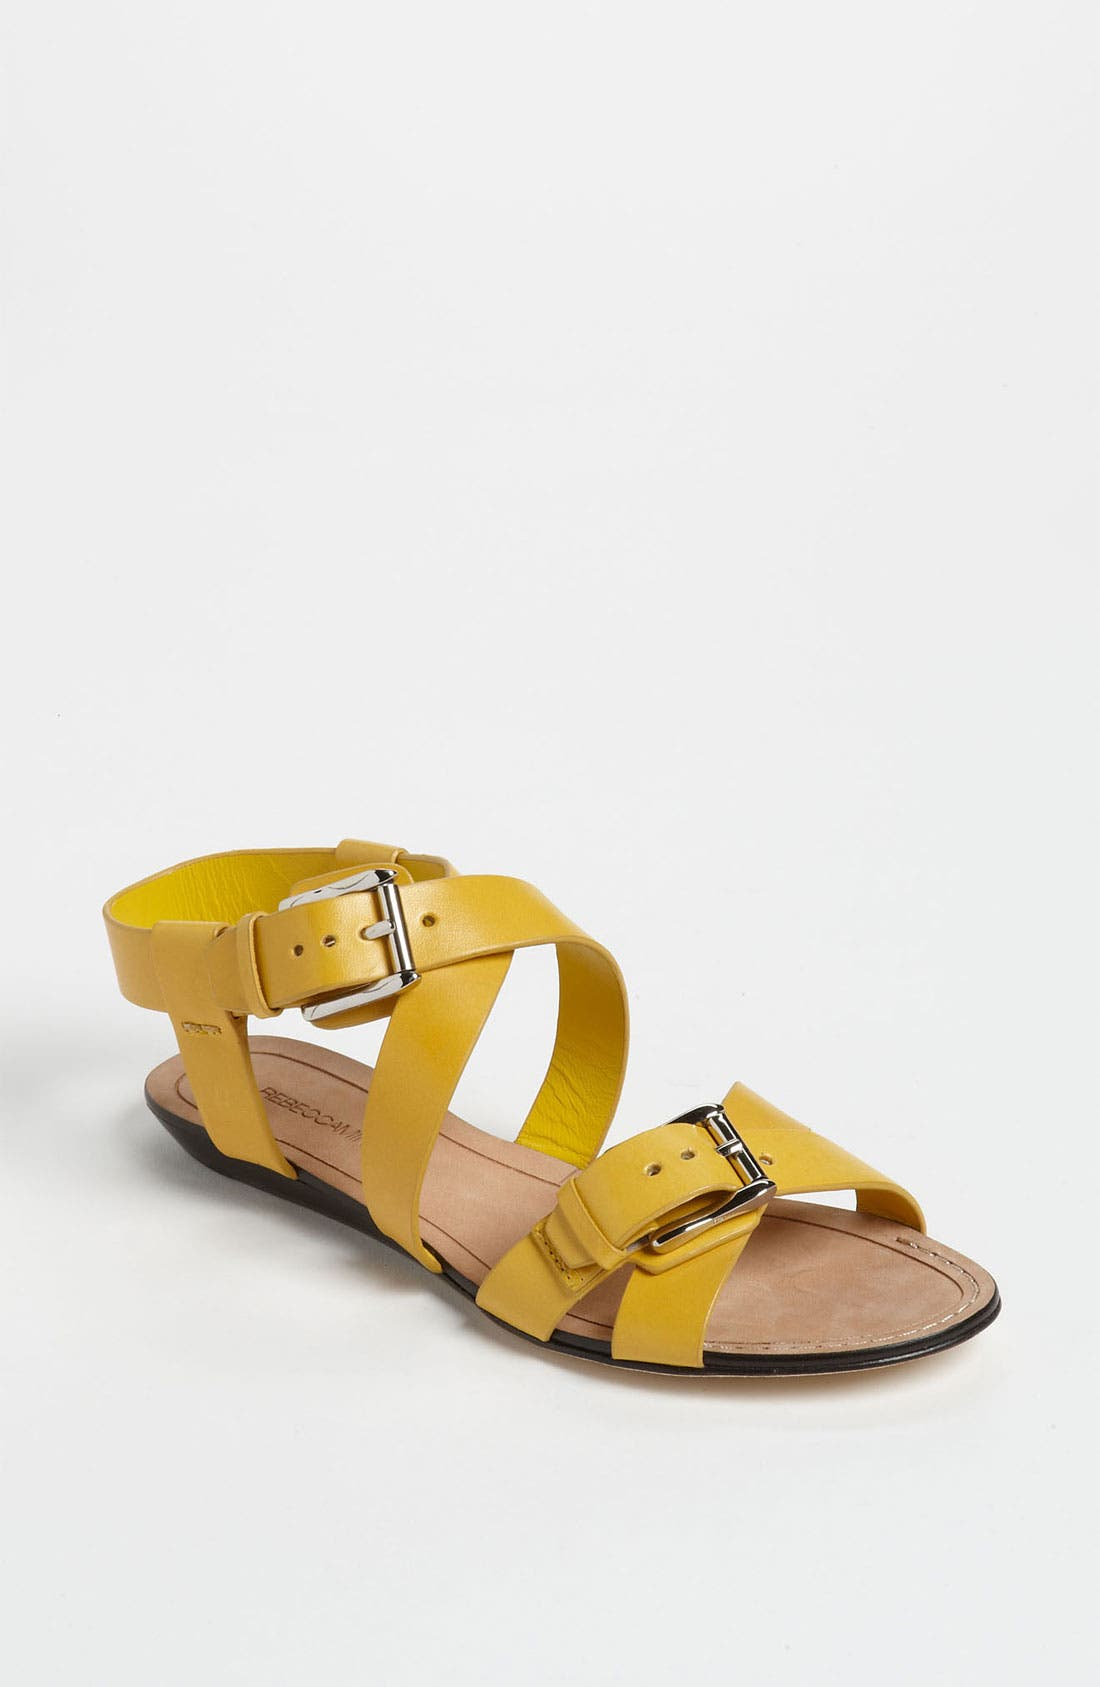 Alternate Image 1 Selected - Rebecca Minkoff 'Josfine' Sandal (Online Only)